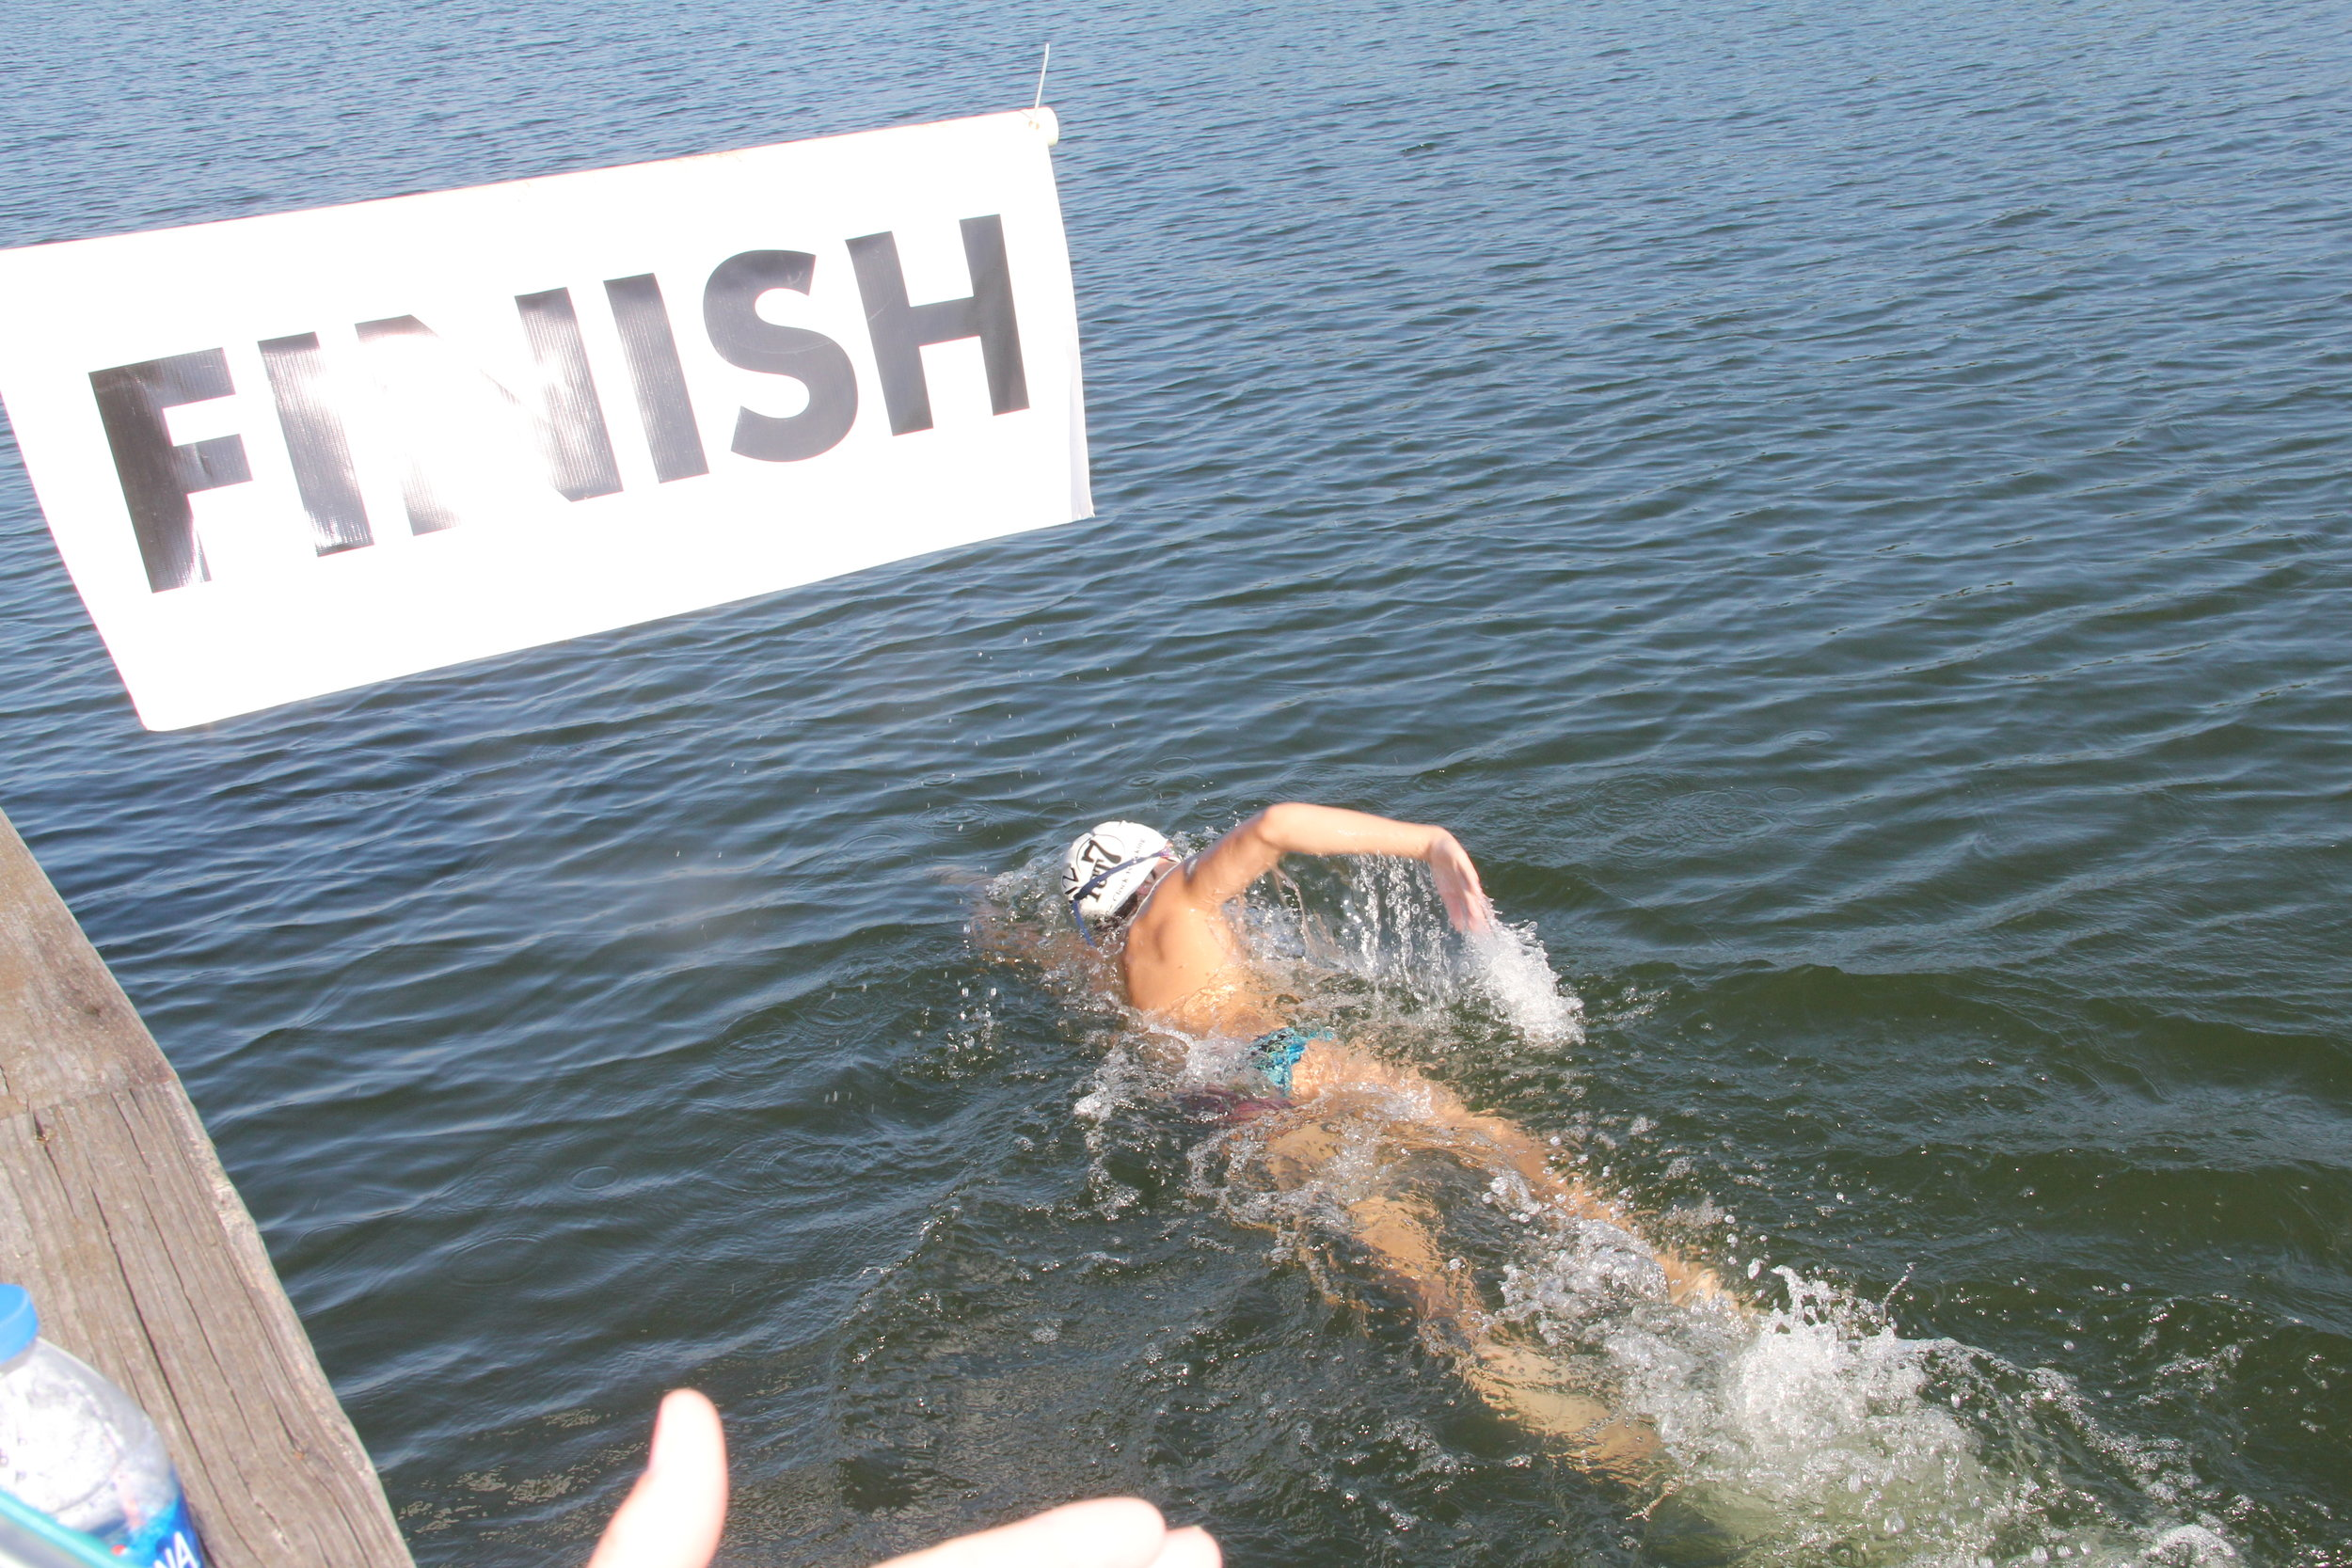 3.5 Mile entrant completing their swim